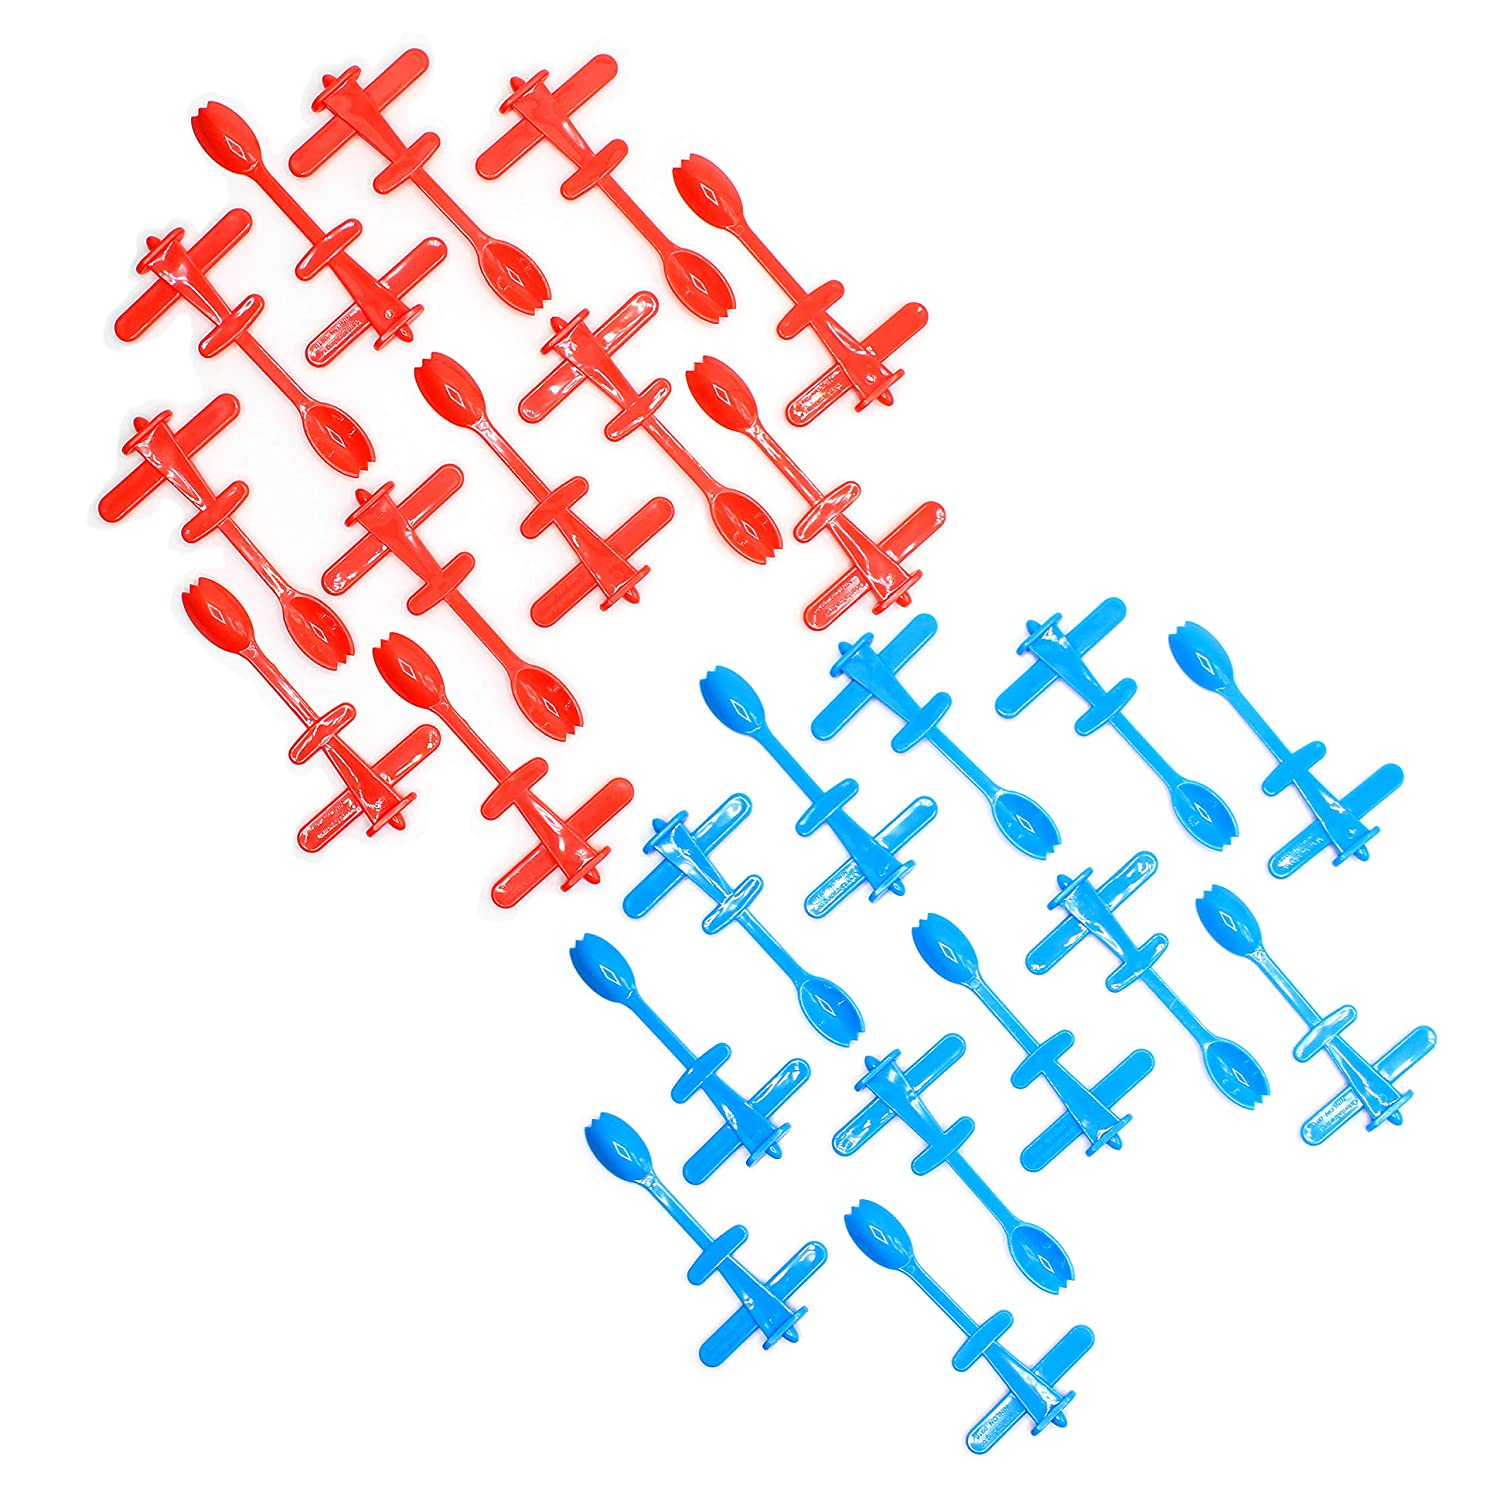 Kidsco Plastic Airplane Cupcake Toppers with Spoon 3.75 Inches Decorations Supplies Kayco USA 25 Pieces Birthdays for Airplane Themed Parties Cute Blue and Red Airplane Cupcake Picks